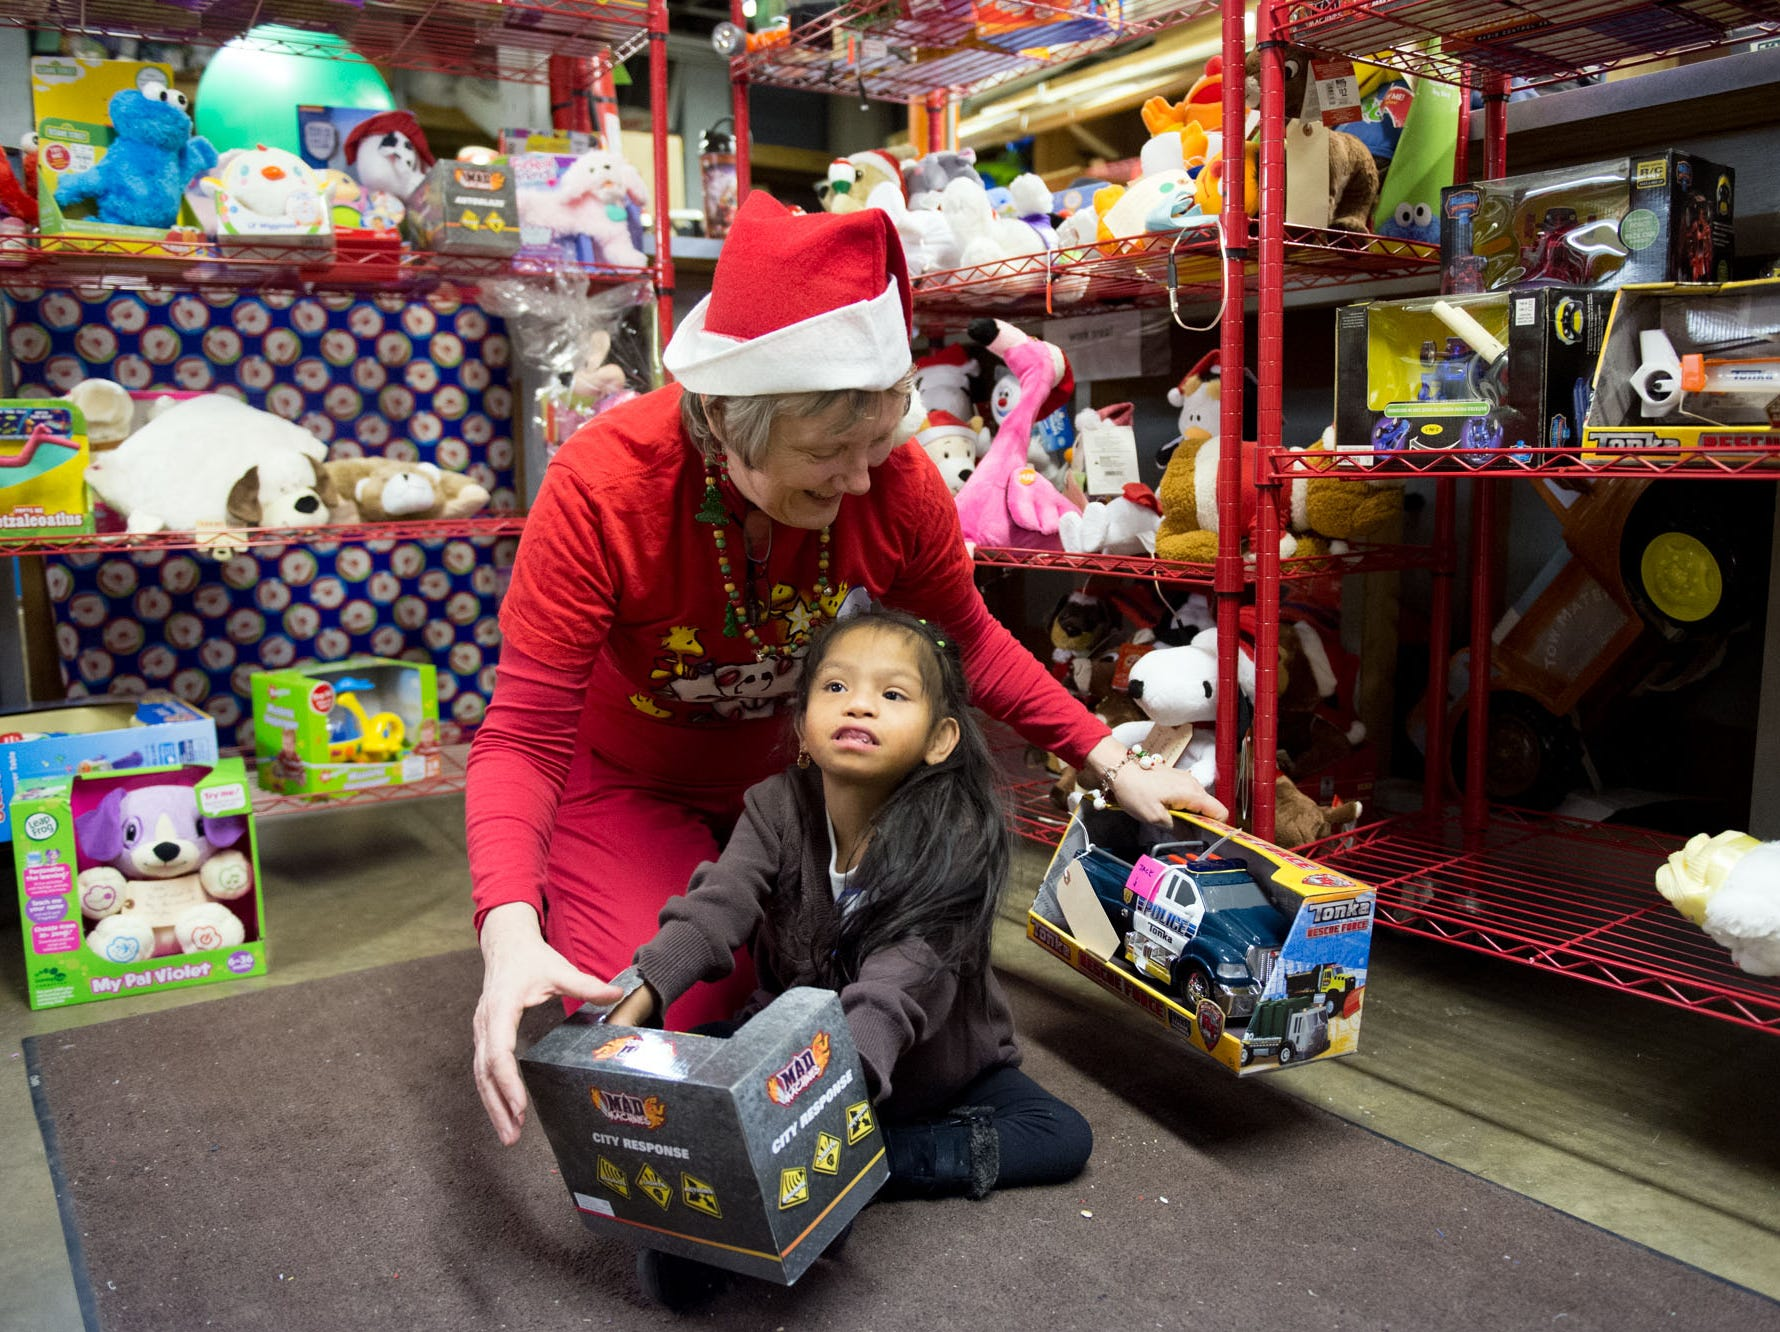 Volunteer Alice Wershing helps Lucy Mendilla, 5, pick out a toy during the East Tennessee Technology Access Center's Toy Tech party on Monday, December 8, 2014. The event gives out electronic toys that have been adapted to be easier to use by children with disabilities.